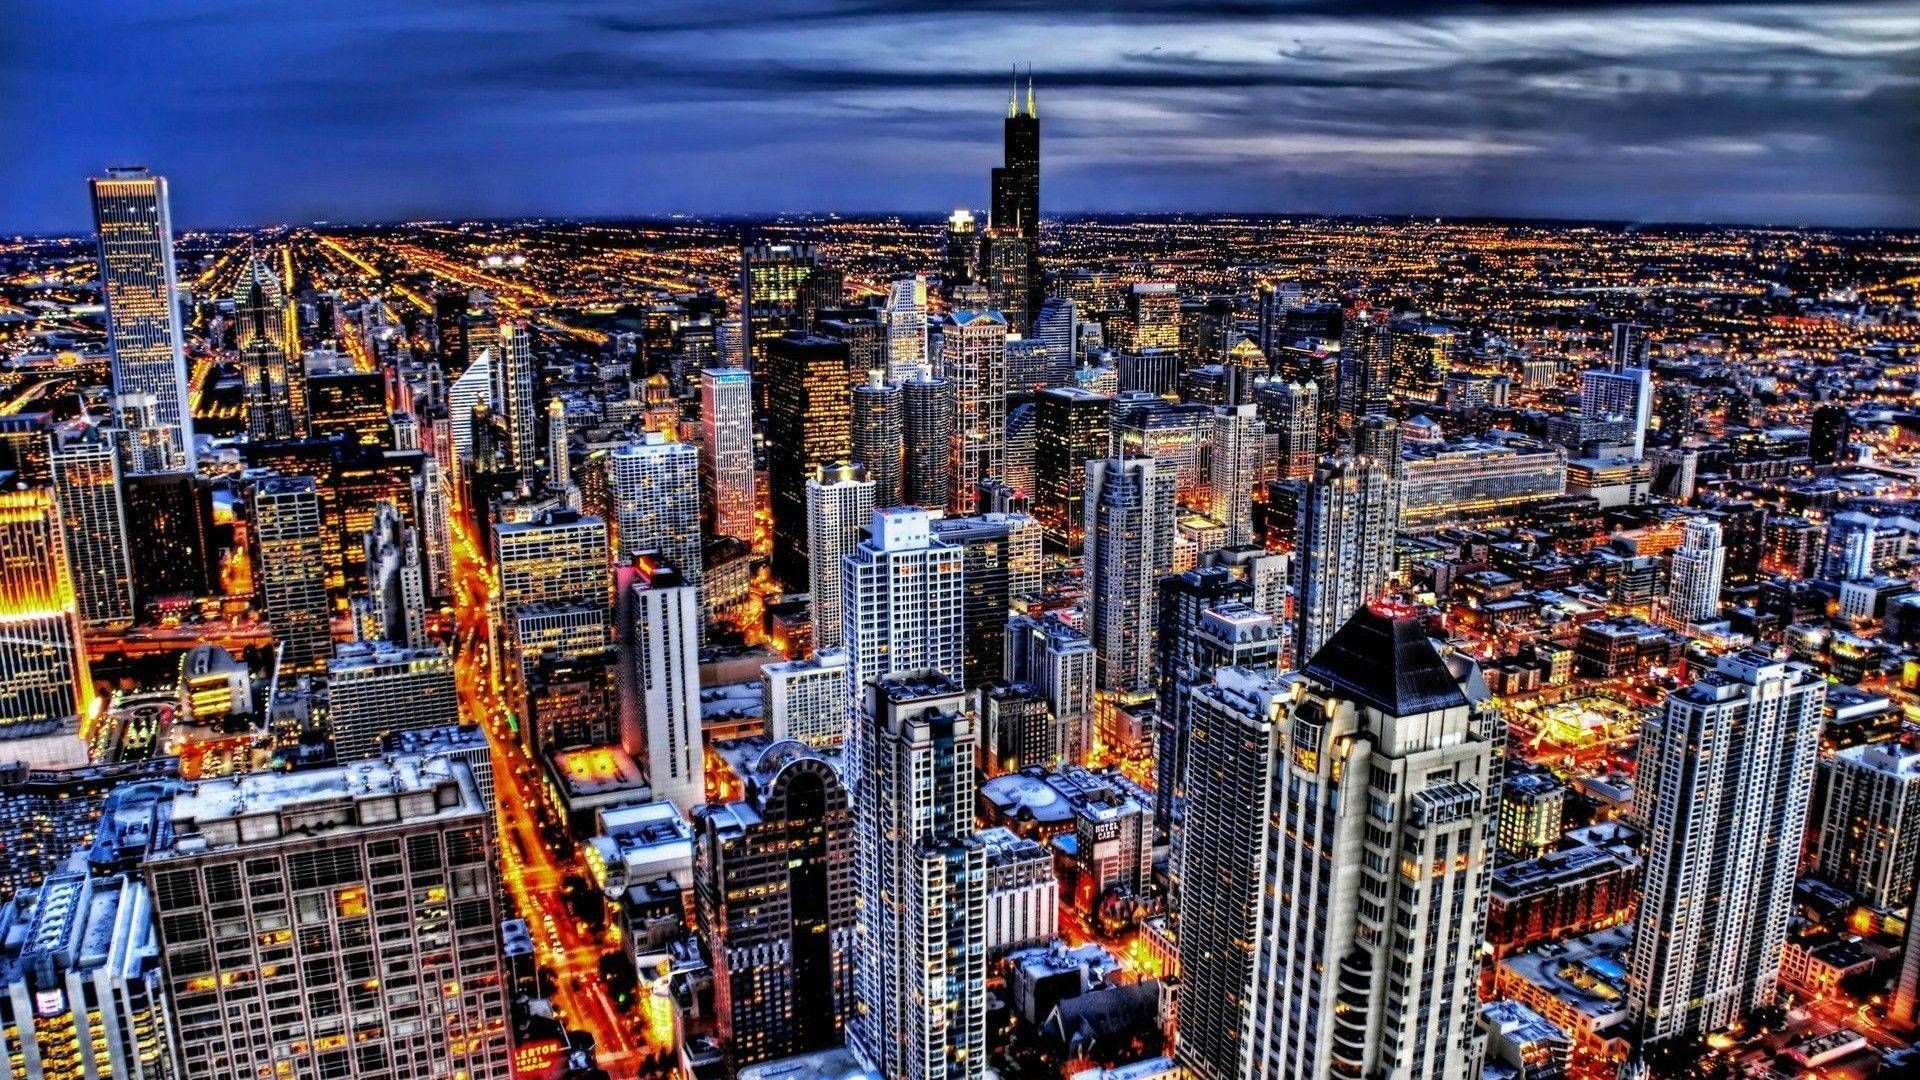 Chicago Night Lights | American cities | City photos